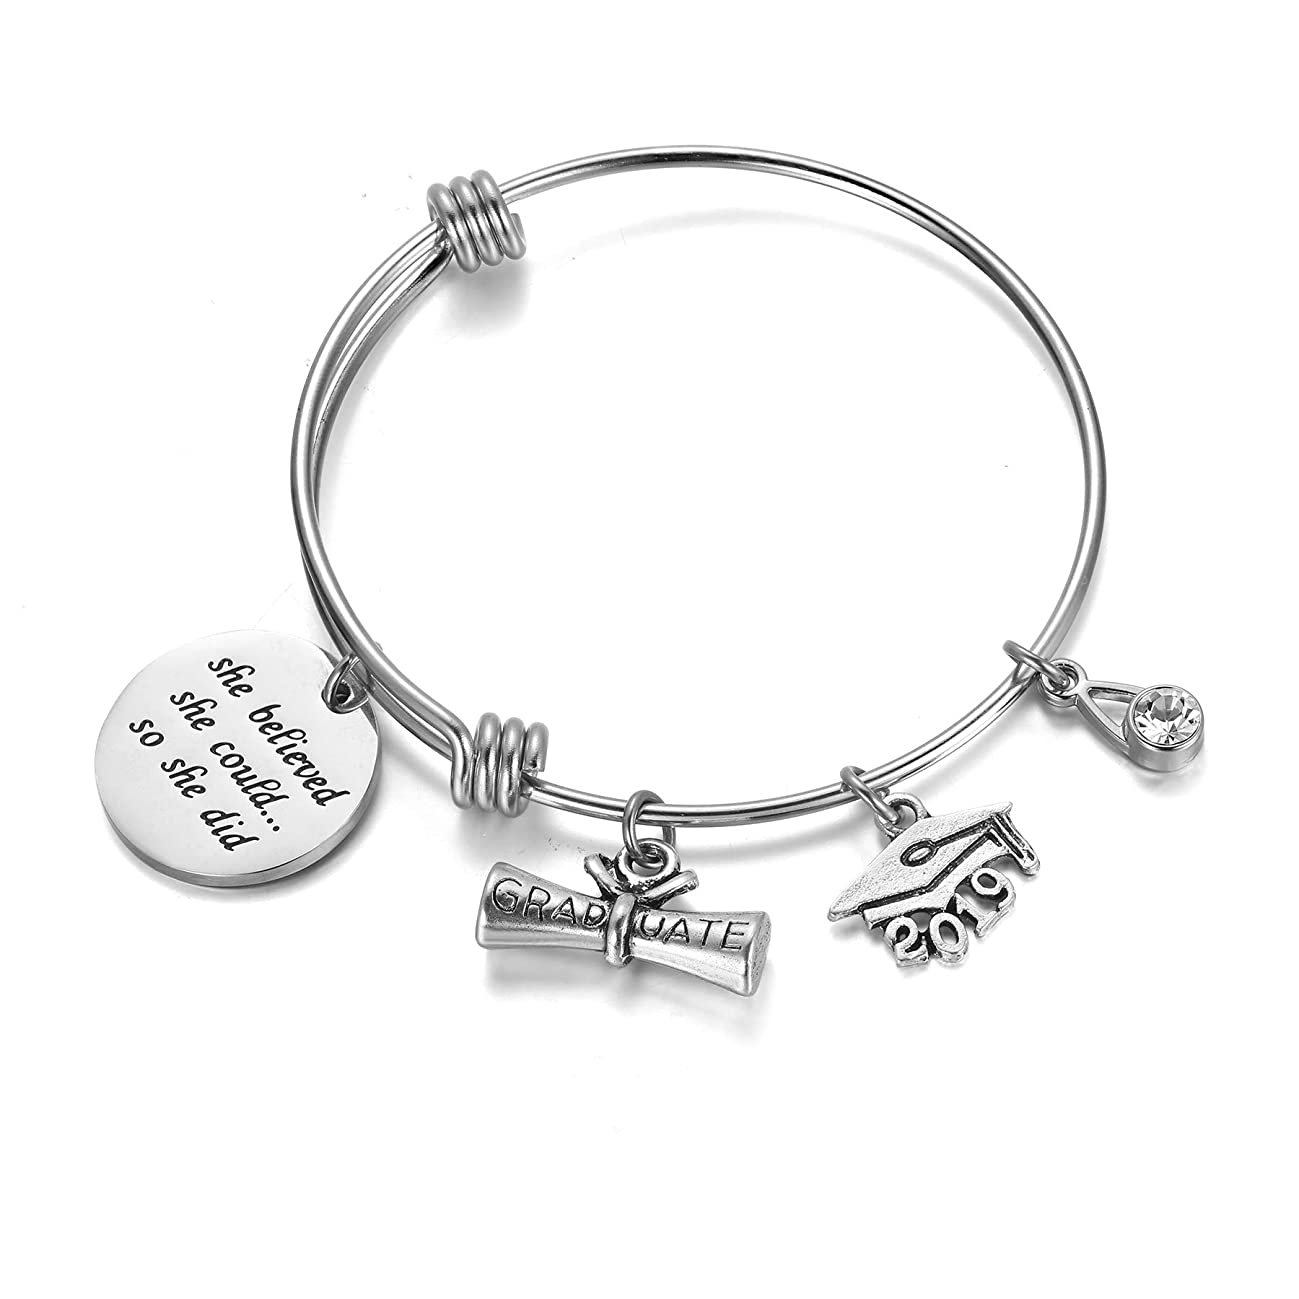 AZORA Inspirational Bracelet for Women Stainless Steel Cuff Bangle Mantra Quote Keep Going Message Engraved Uplifting Jewelry Gift for Teen Girls Sister Friend